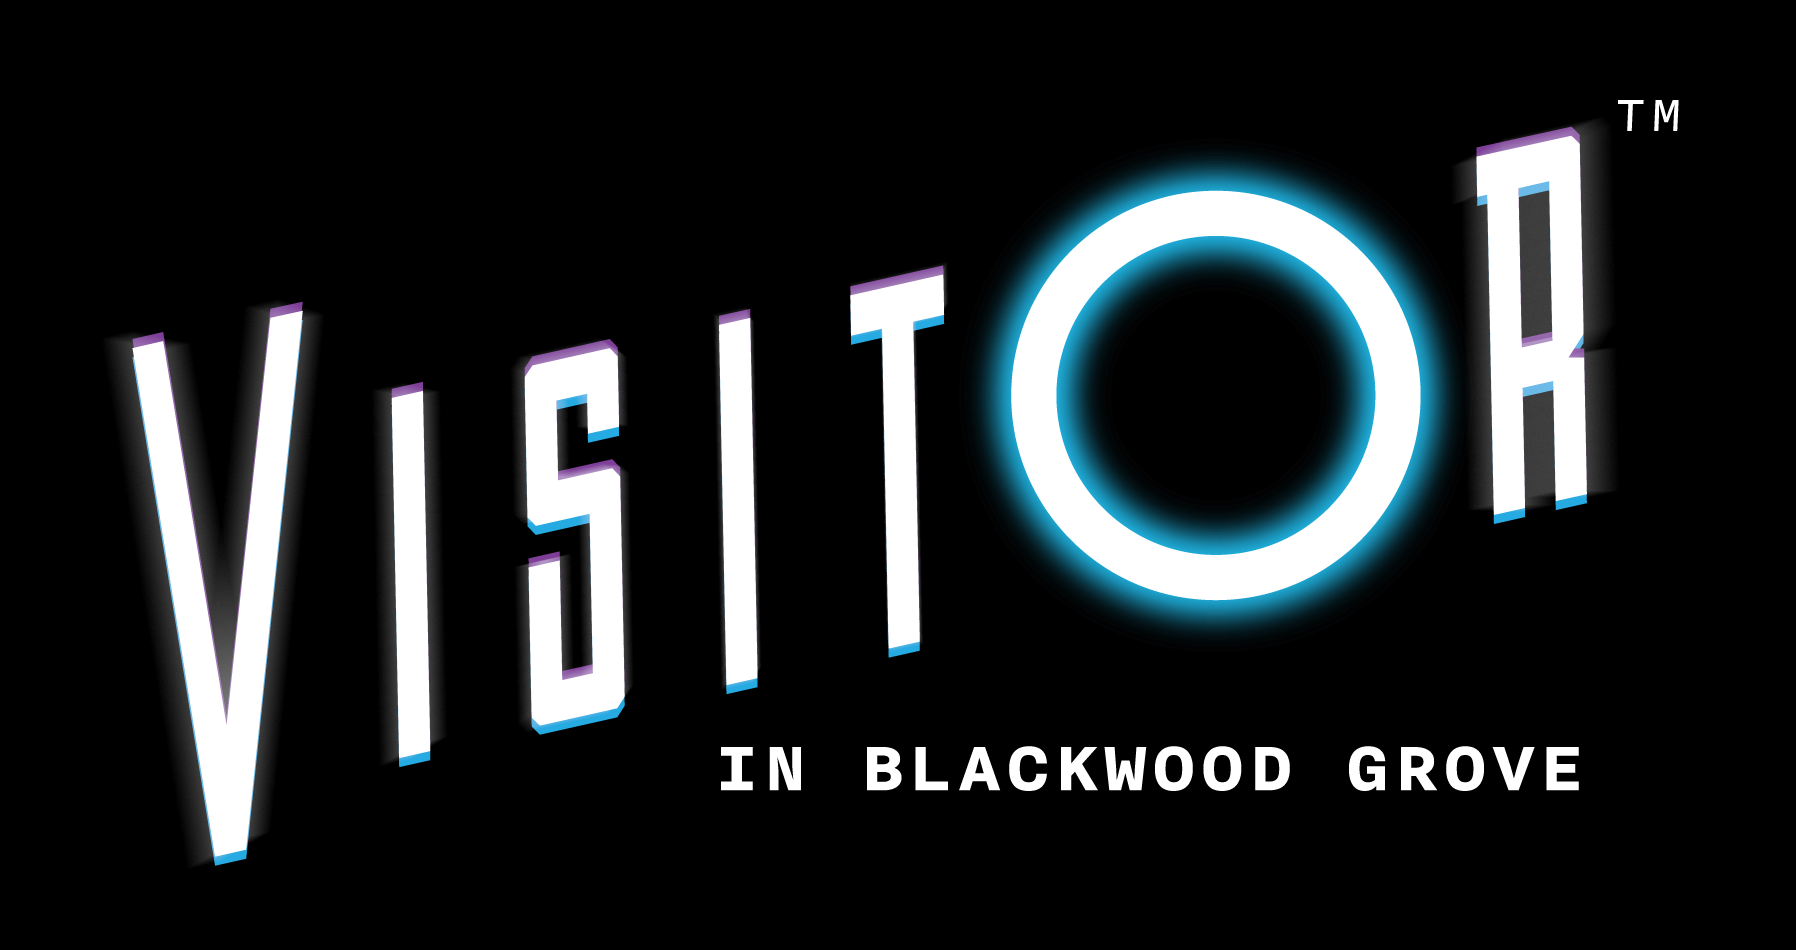 LOGO - VISITOR in Blackwood Grove